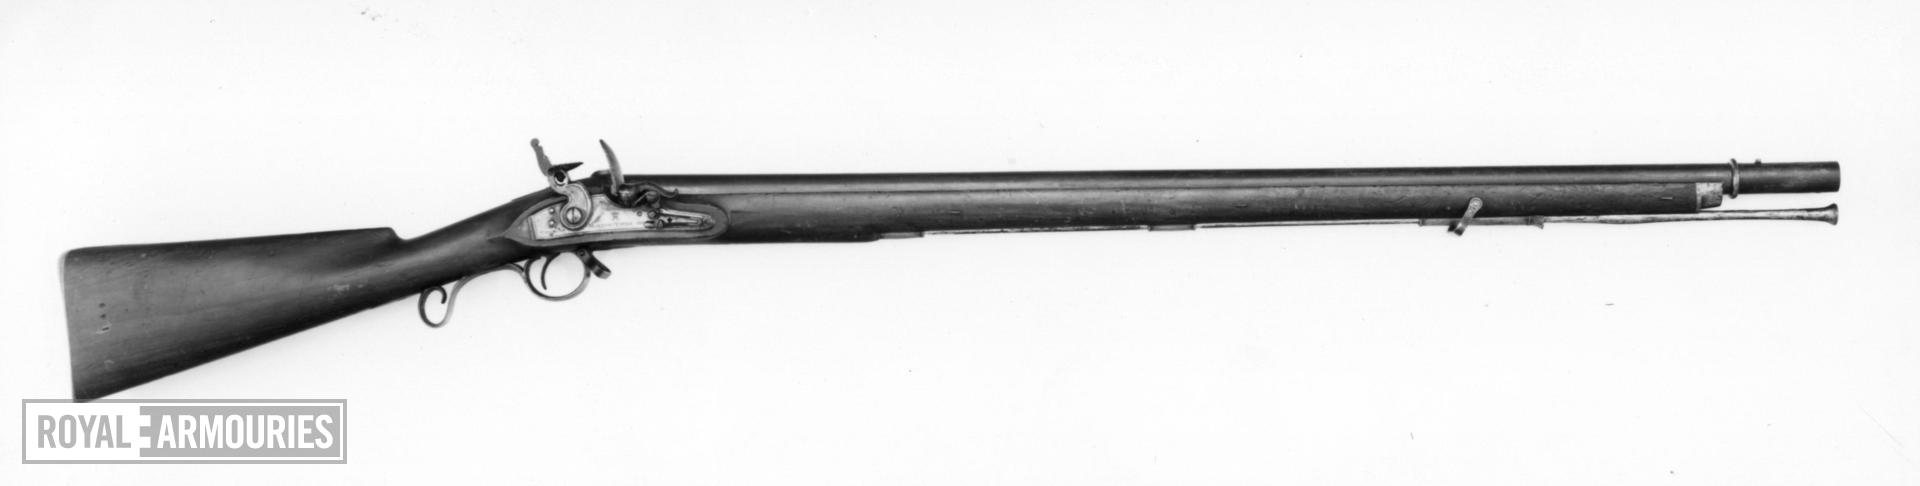 Flintlock muzzle-loading military musket - By B. Parsons